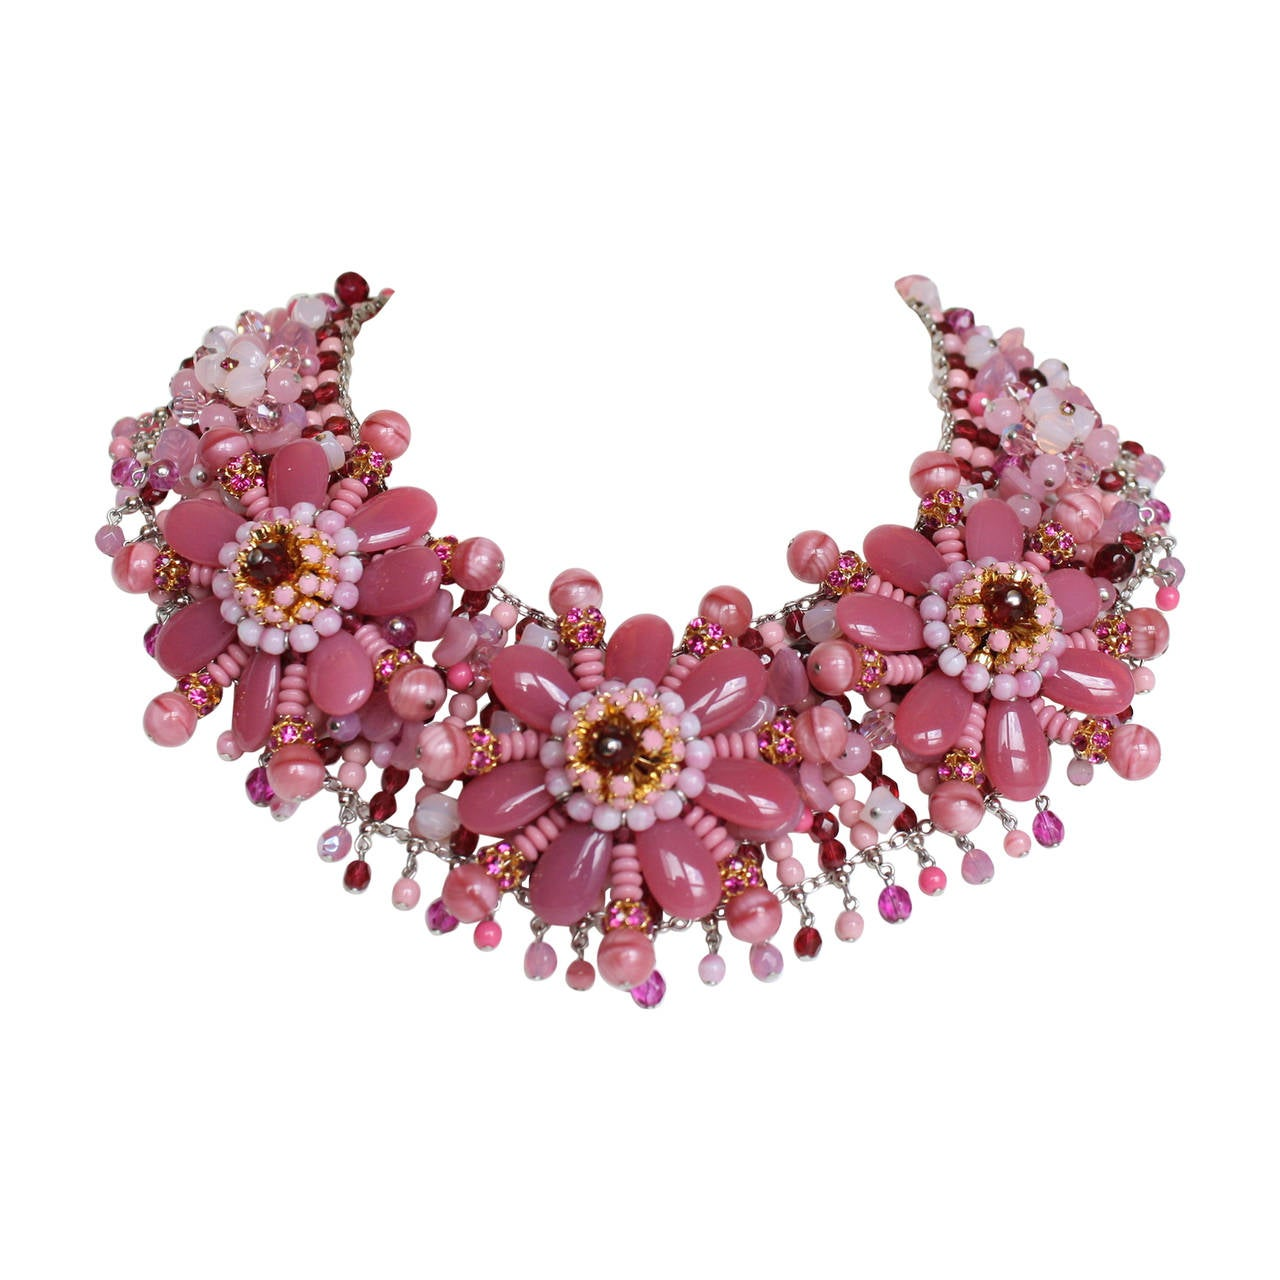 Francoise Montague Hand Beaded Floral Motif Statement Necklace 1